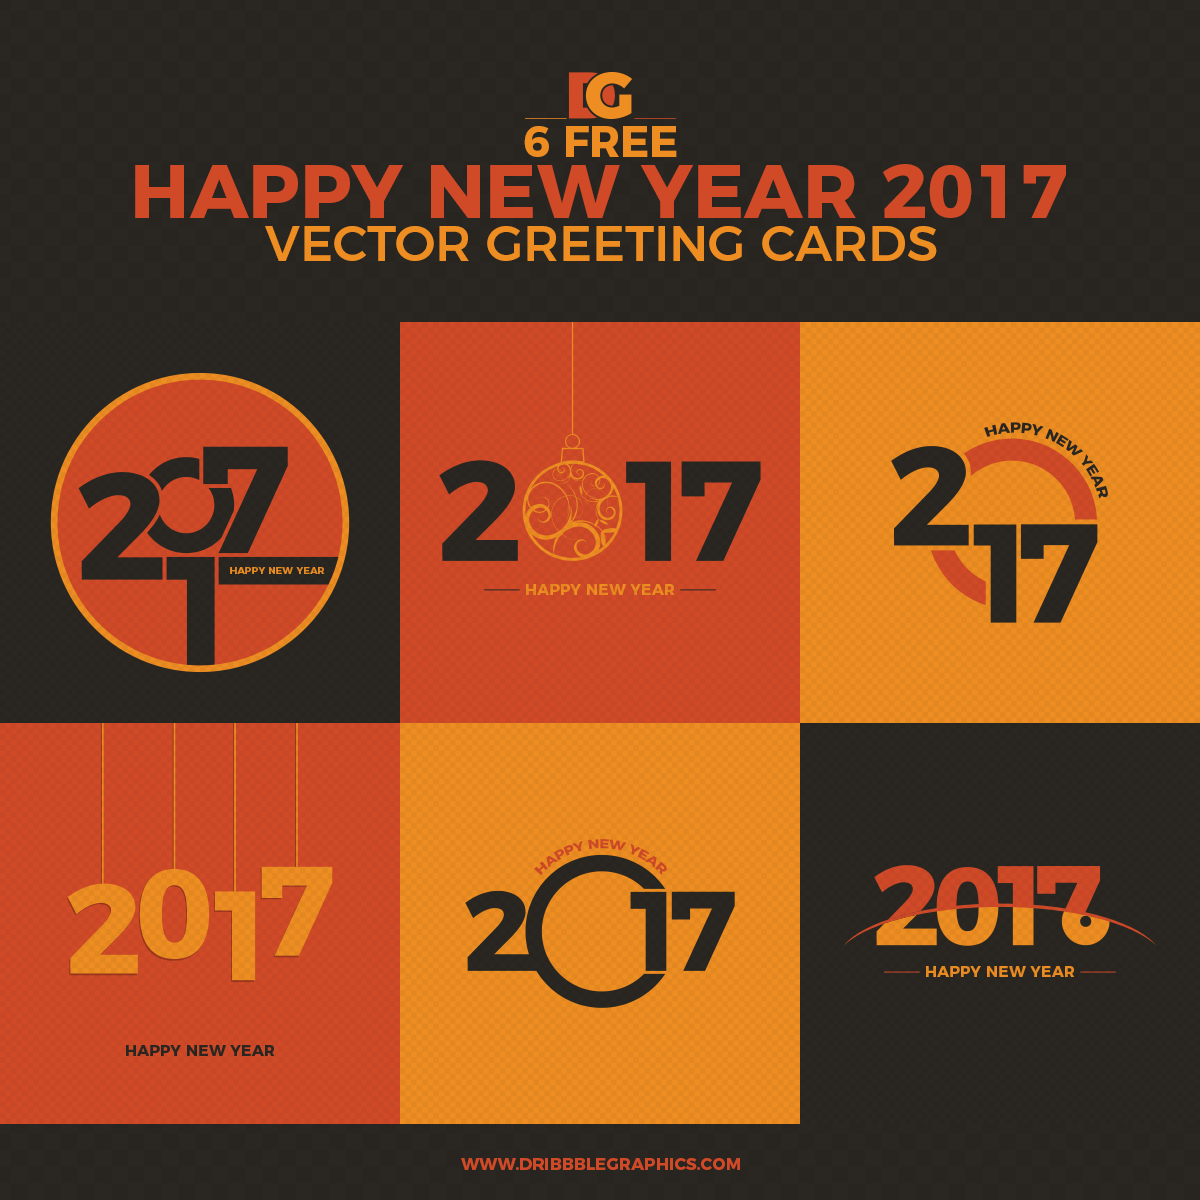 6 Free Happy New Year 2017 Vector Greeting Cards Dribbble Graphics